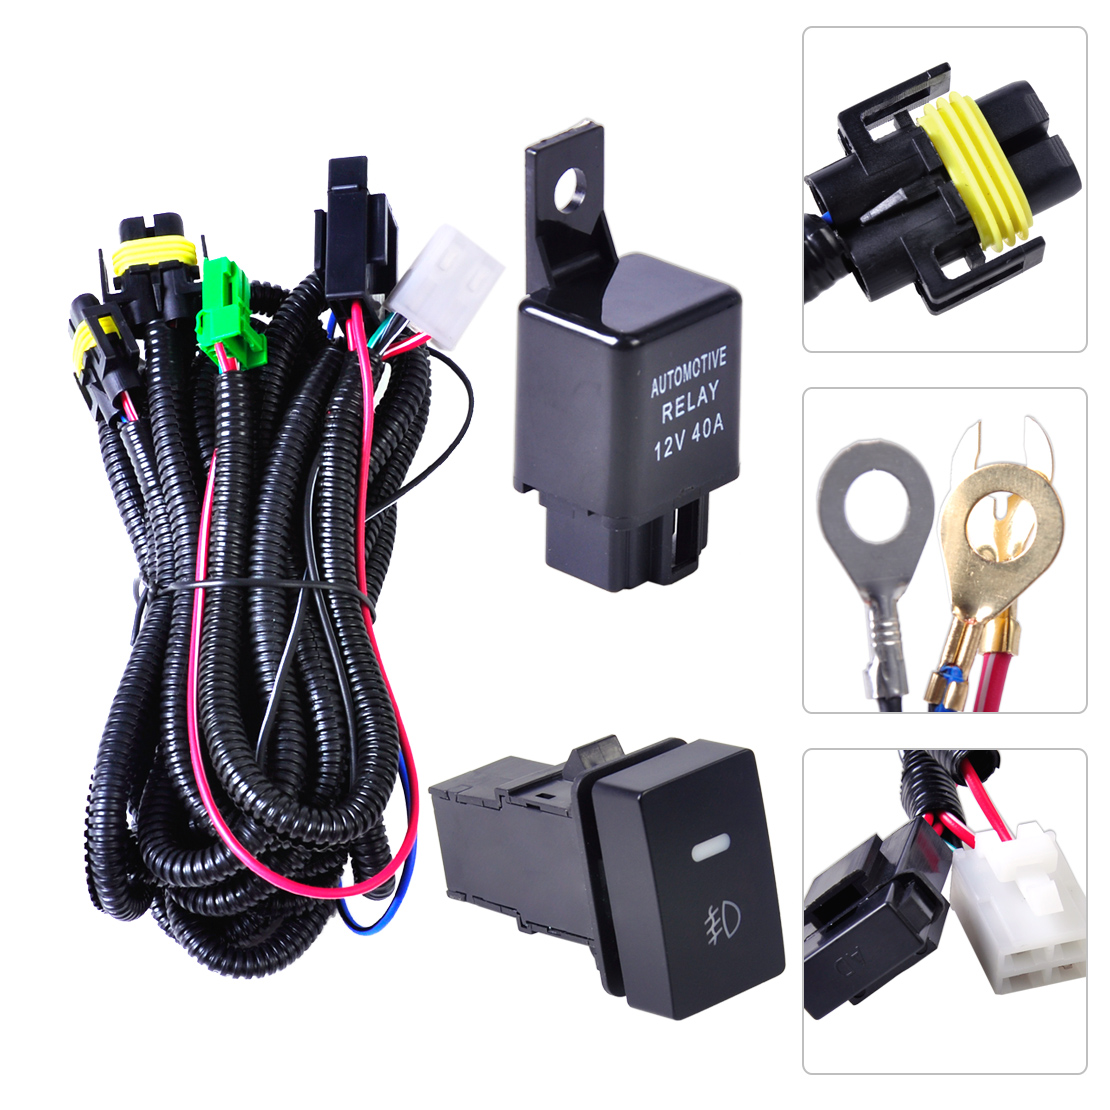 1996 Honda Accord Ignition Wiring Diagram Dwcx Wiring Harness Sockets Wire Switch For H11 Fog